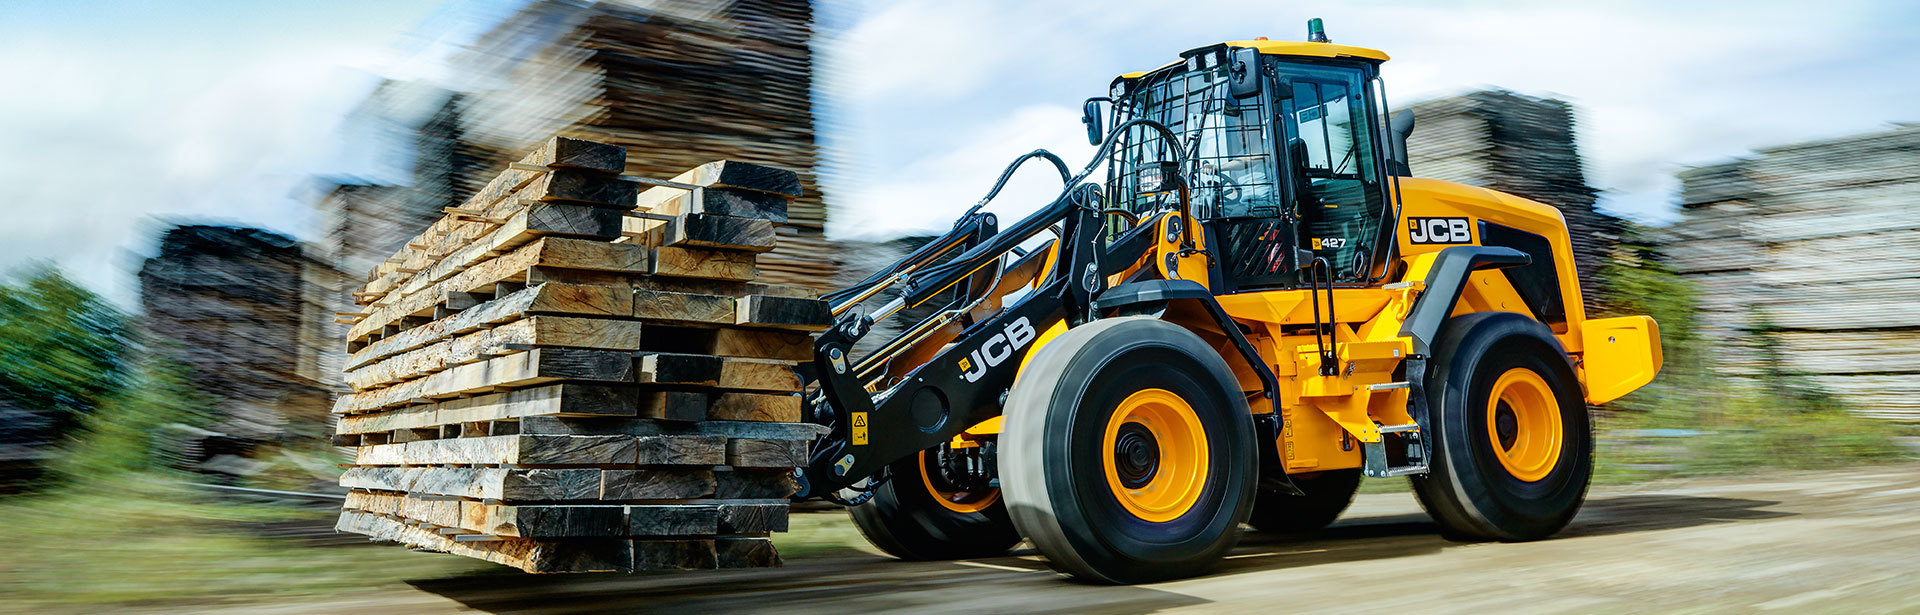 banner-jcb-wheel-loader1.jpg